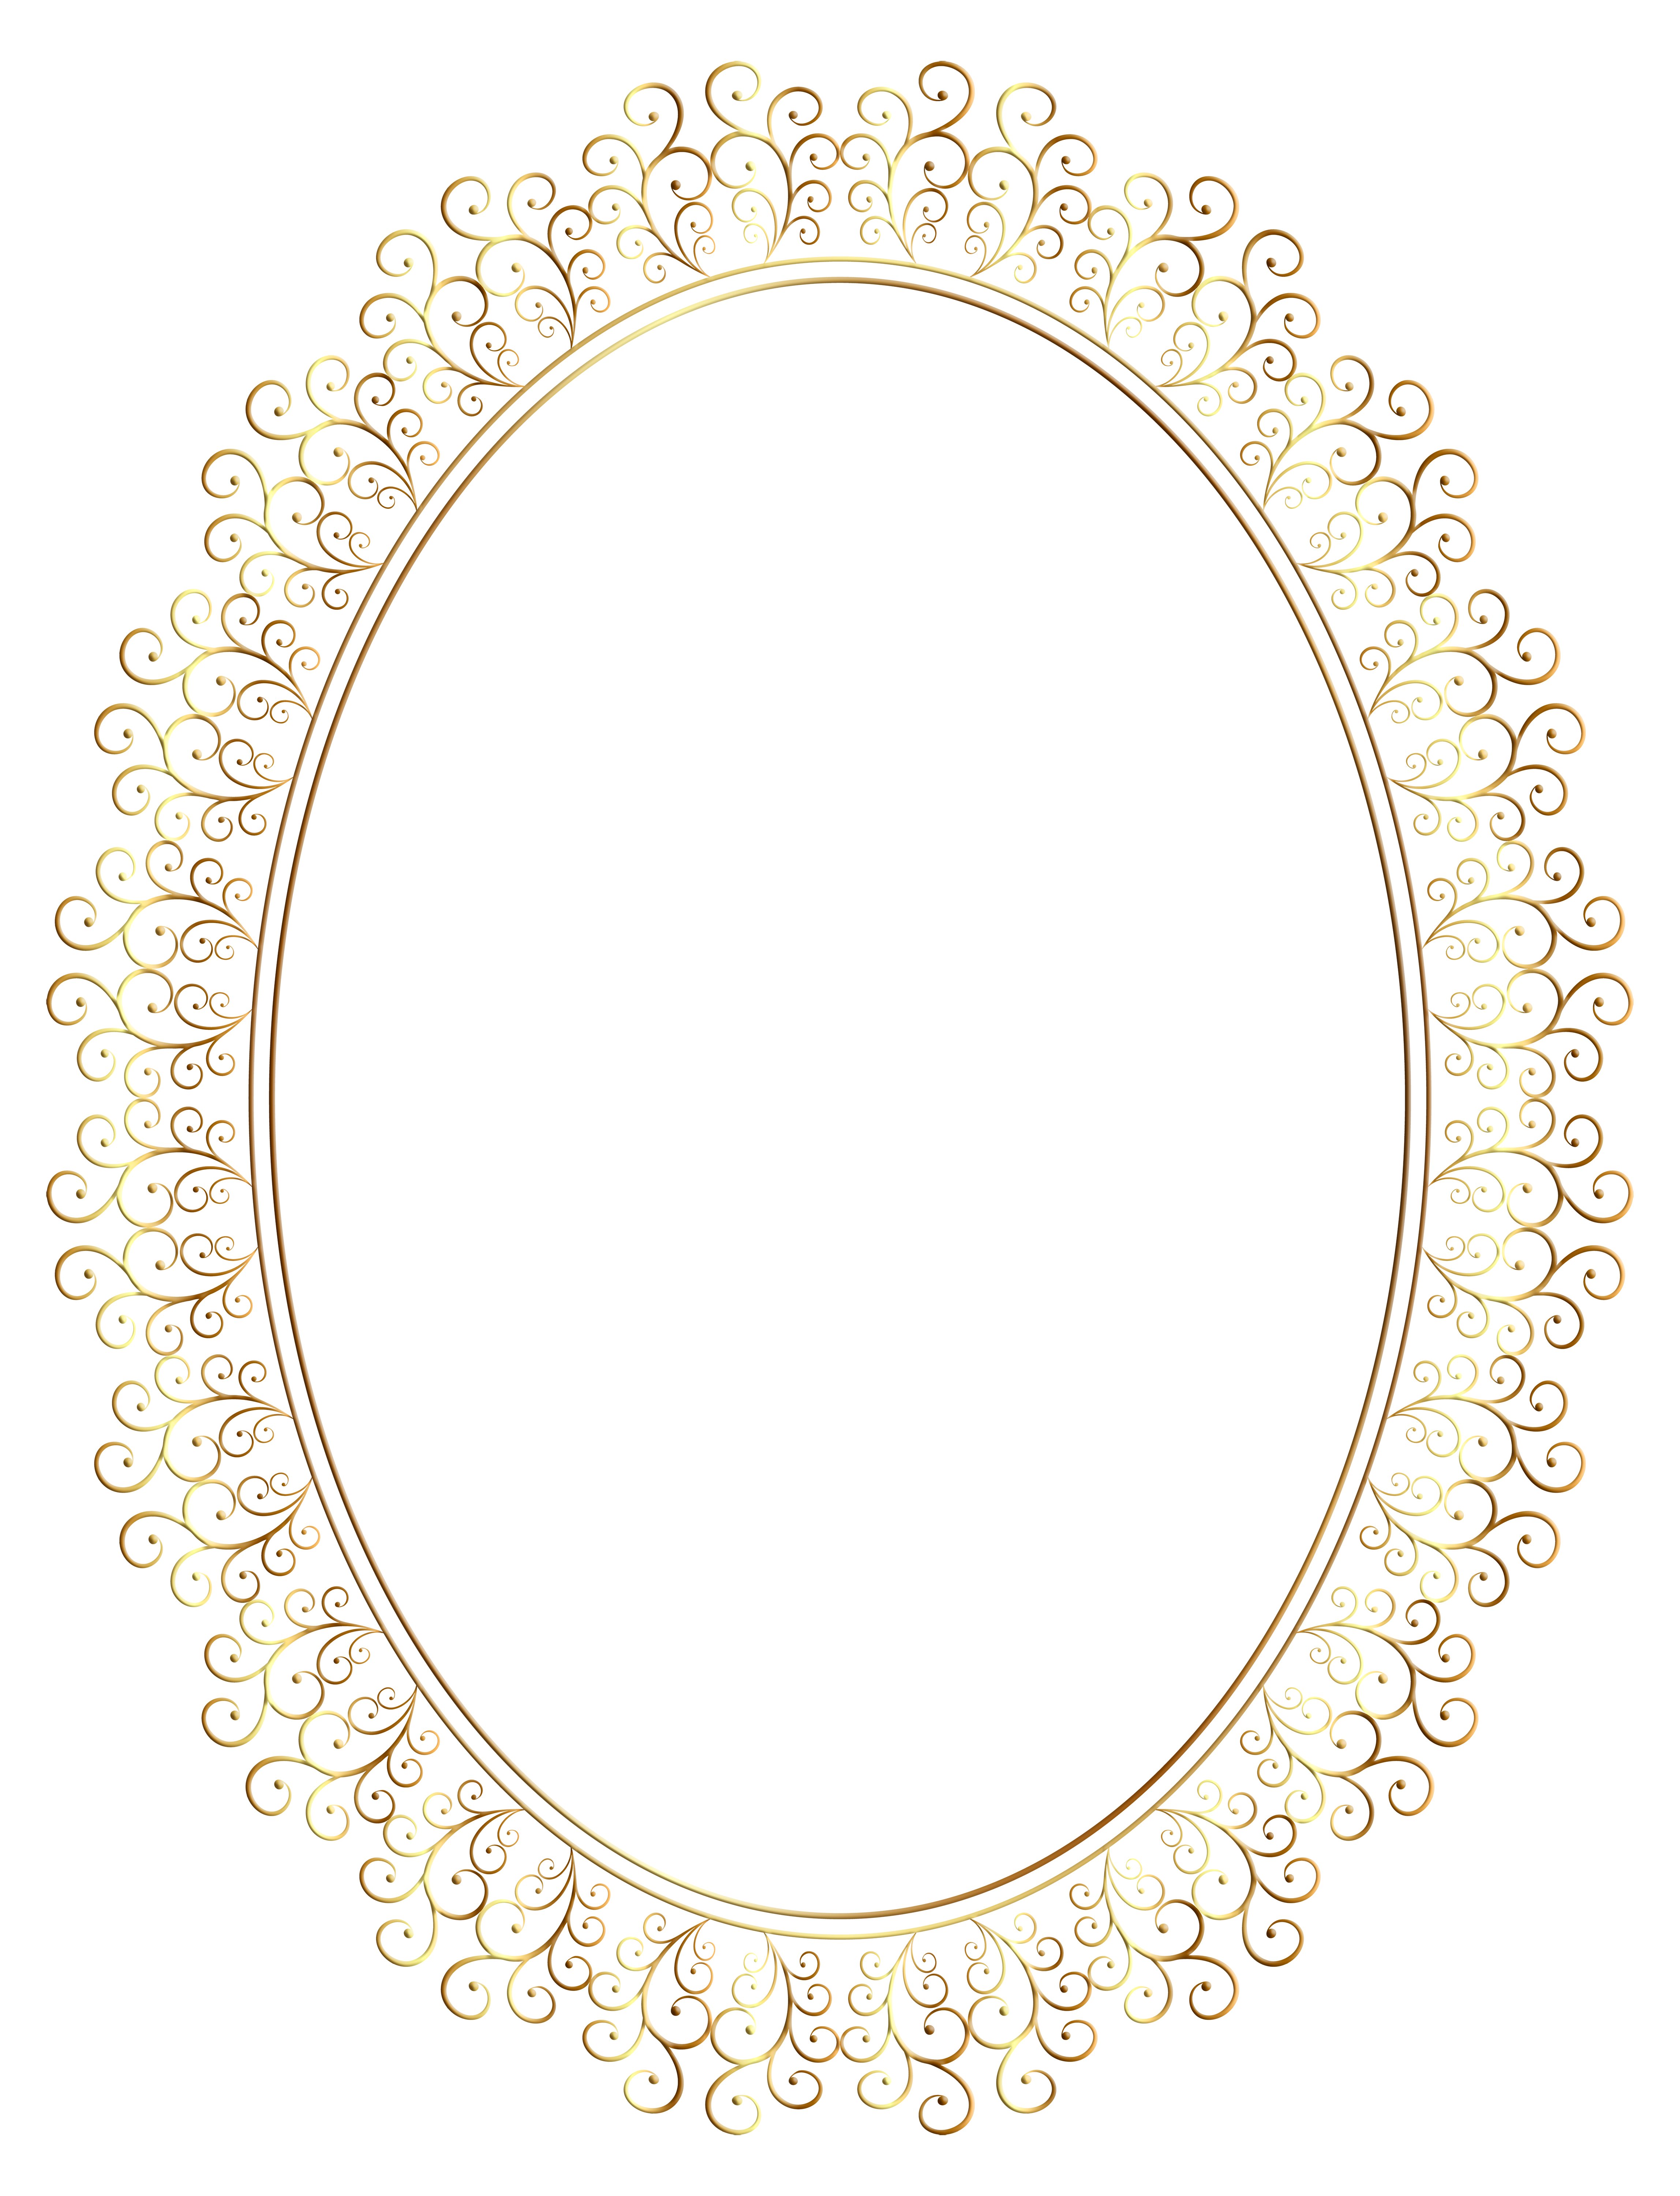 Oval photo frame clipart clip freeuse stock Oval Frame Transparent Clip Art Image | Gallery Yopriceville - High ... clip freeuse stock